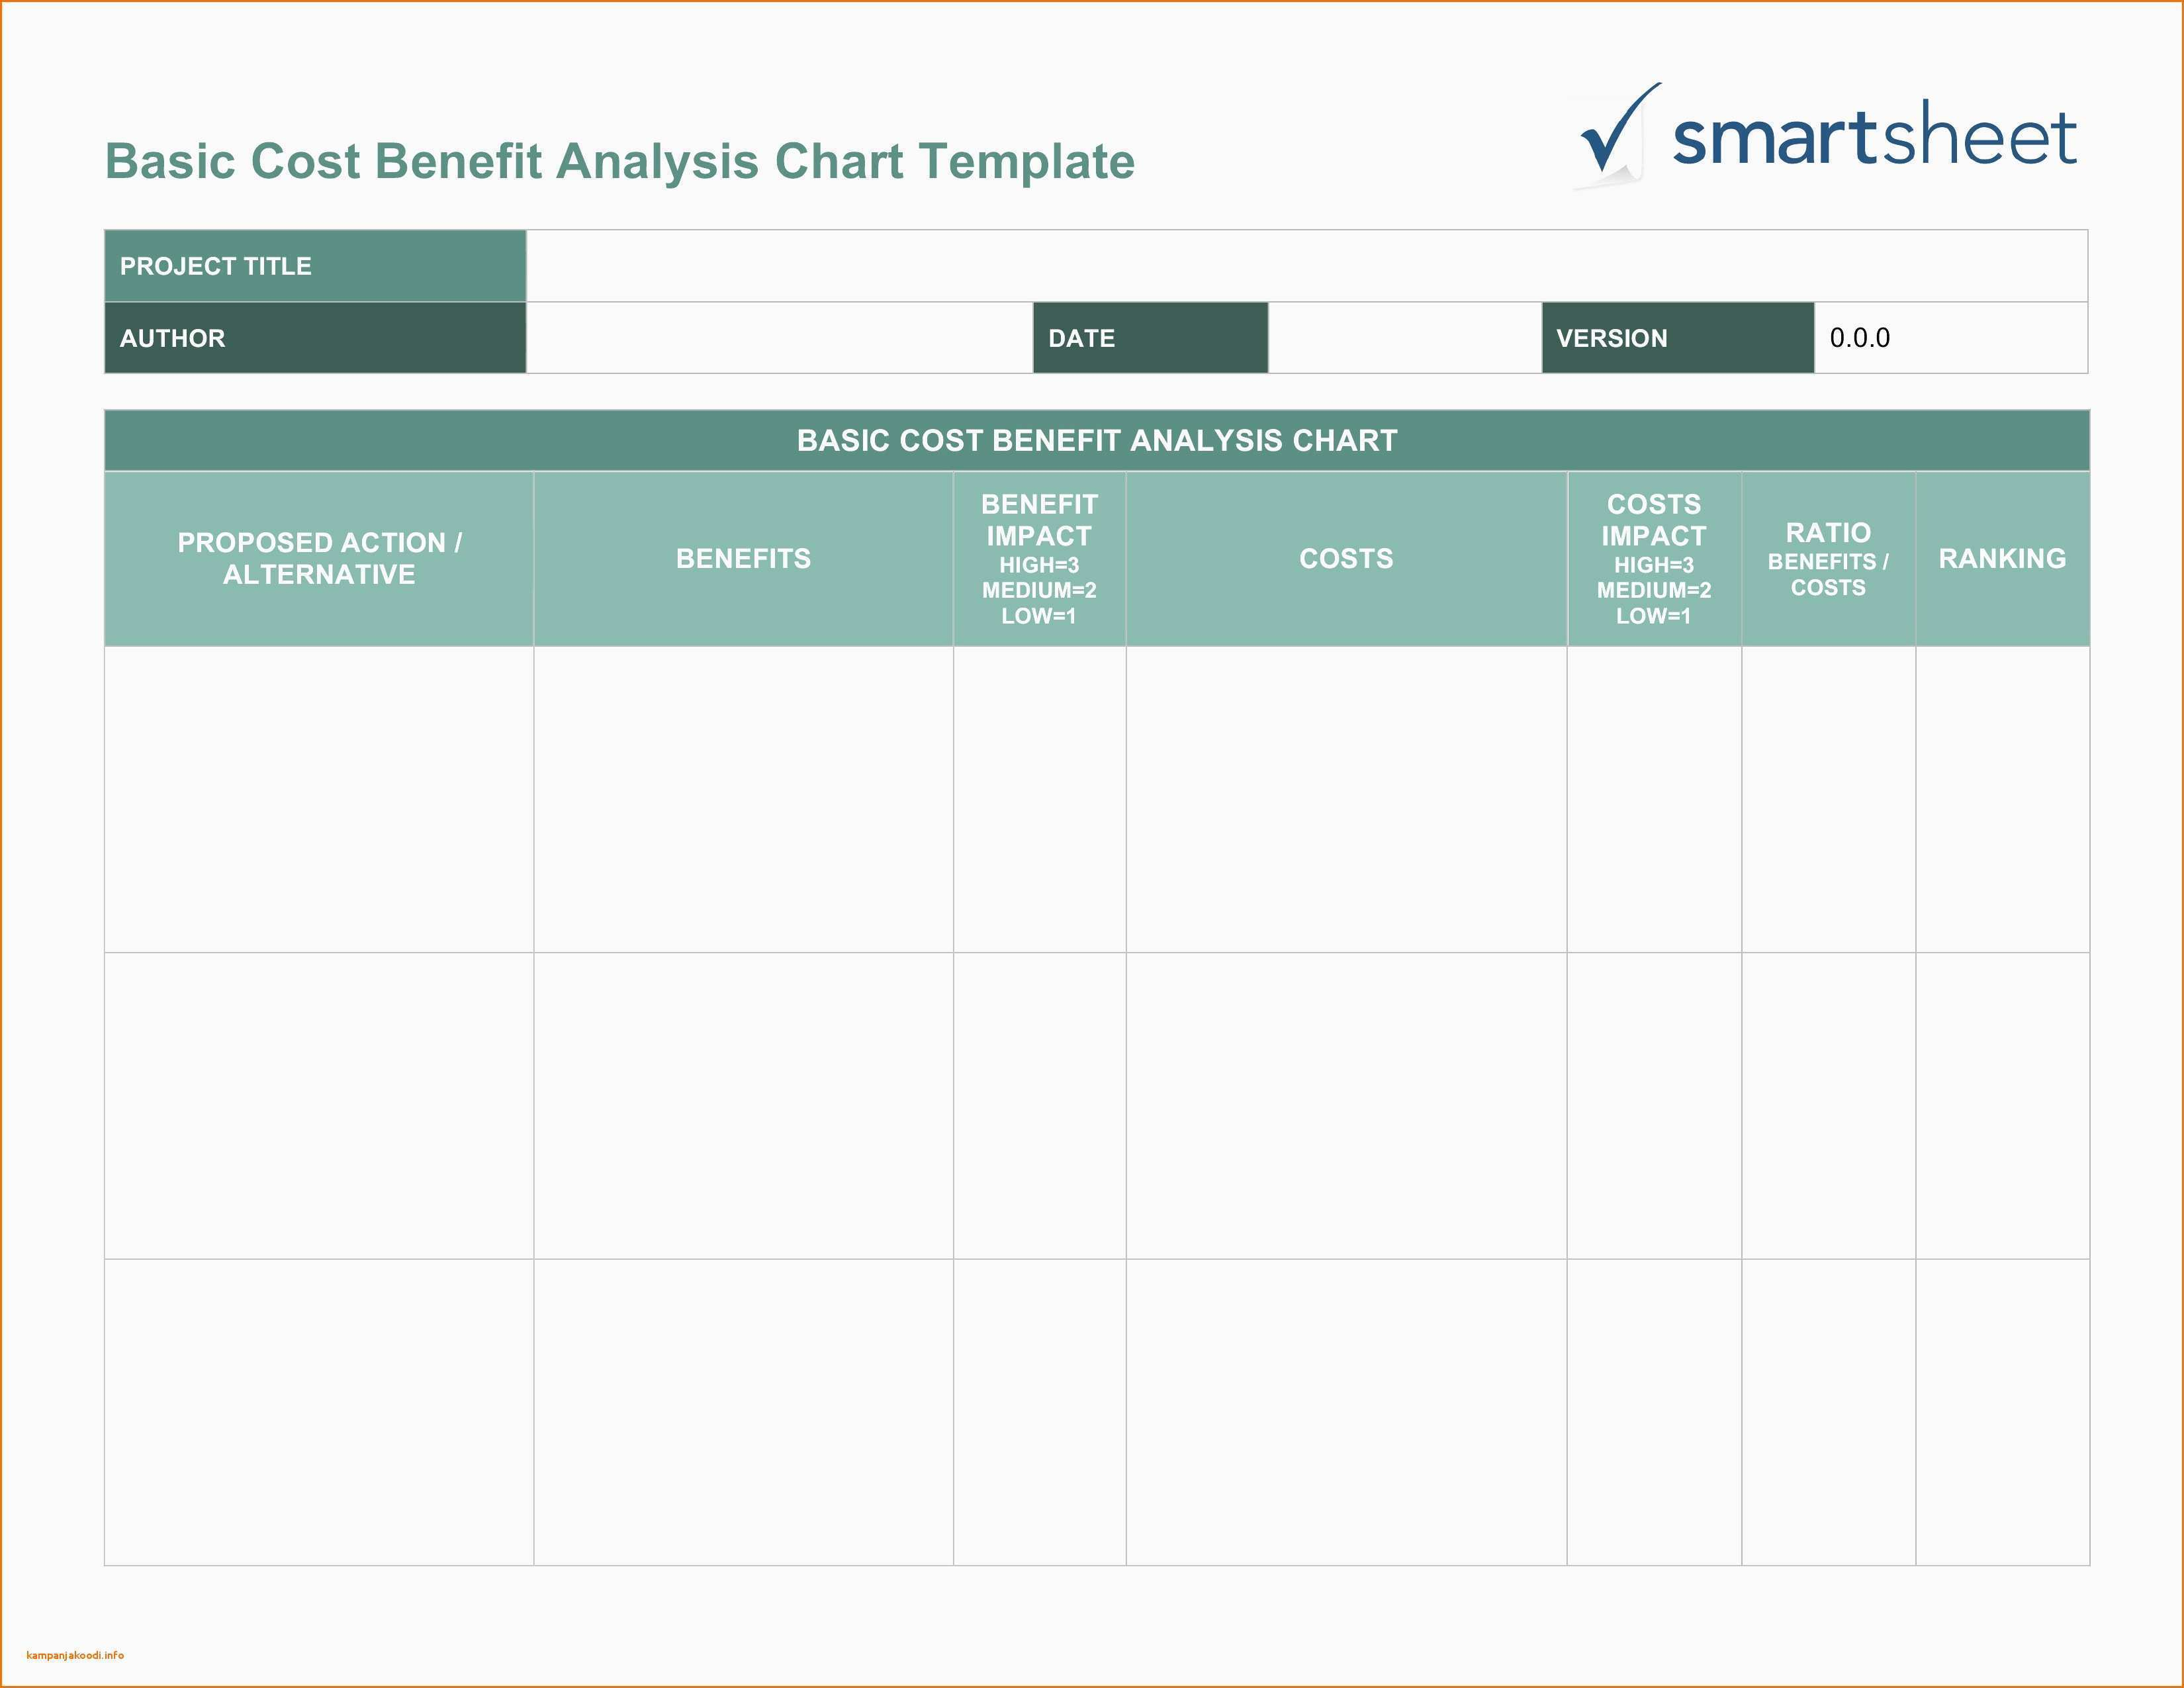 Life Cycle Cost Analysis Excel Spreadsheet For Cost Analysis Spreadsheet Template Gap Analysis Spreadsheet For Work